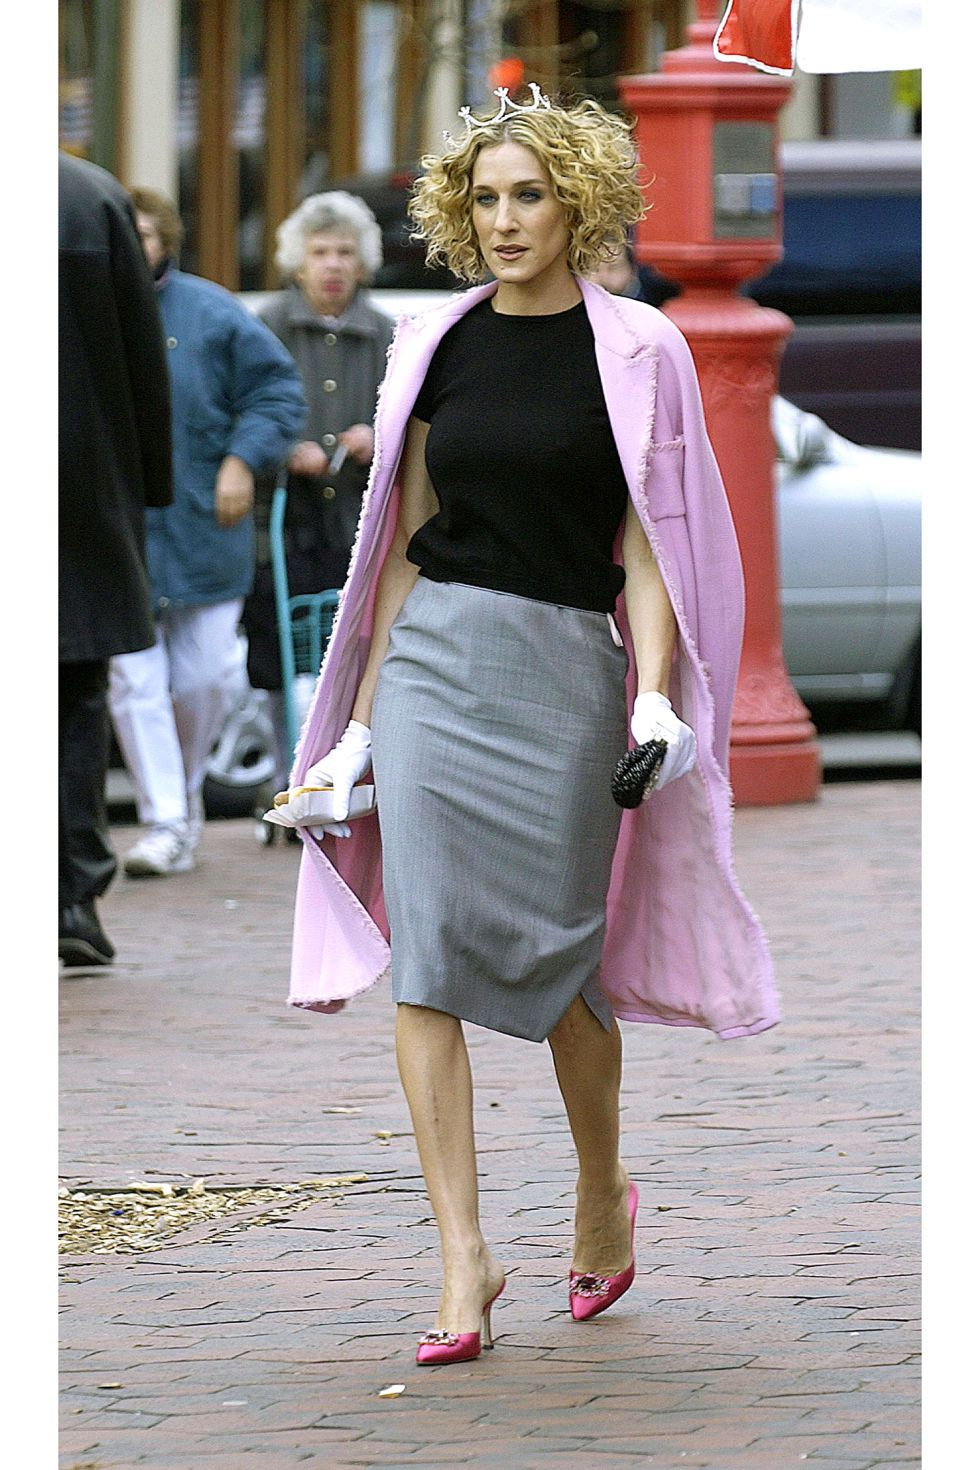 alleygirl.com wp-content uploads 2016 09 best-carrie-bradshaw-looks-according-to-alley-girl-2.jpg